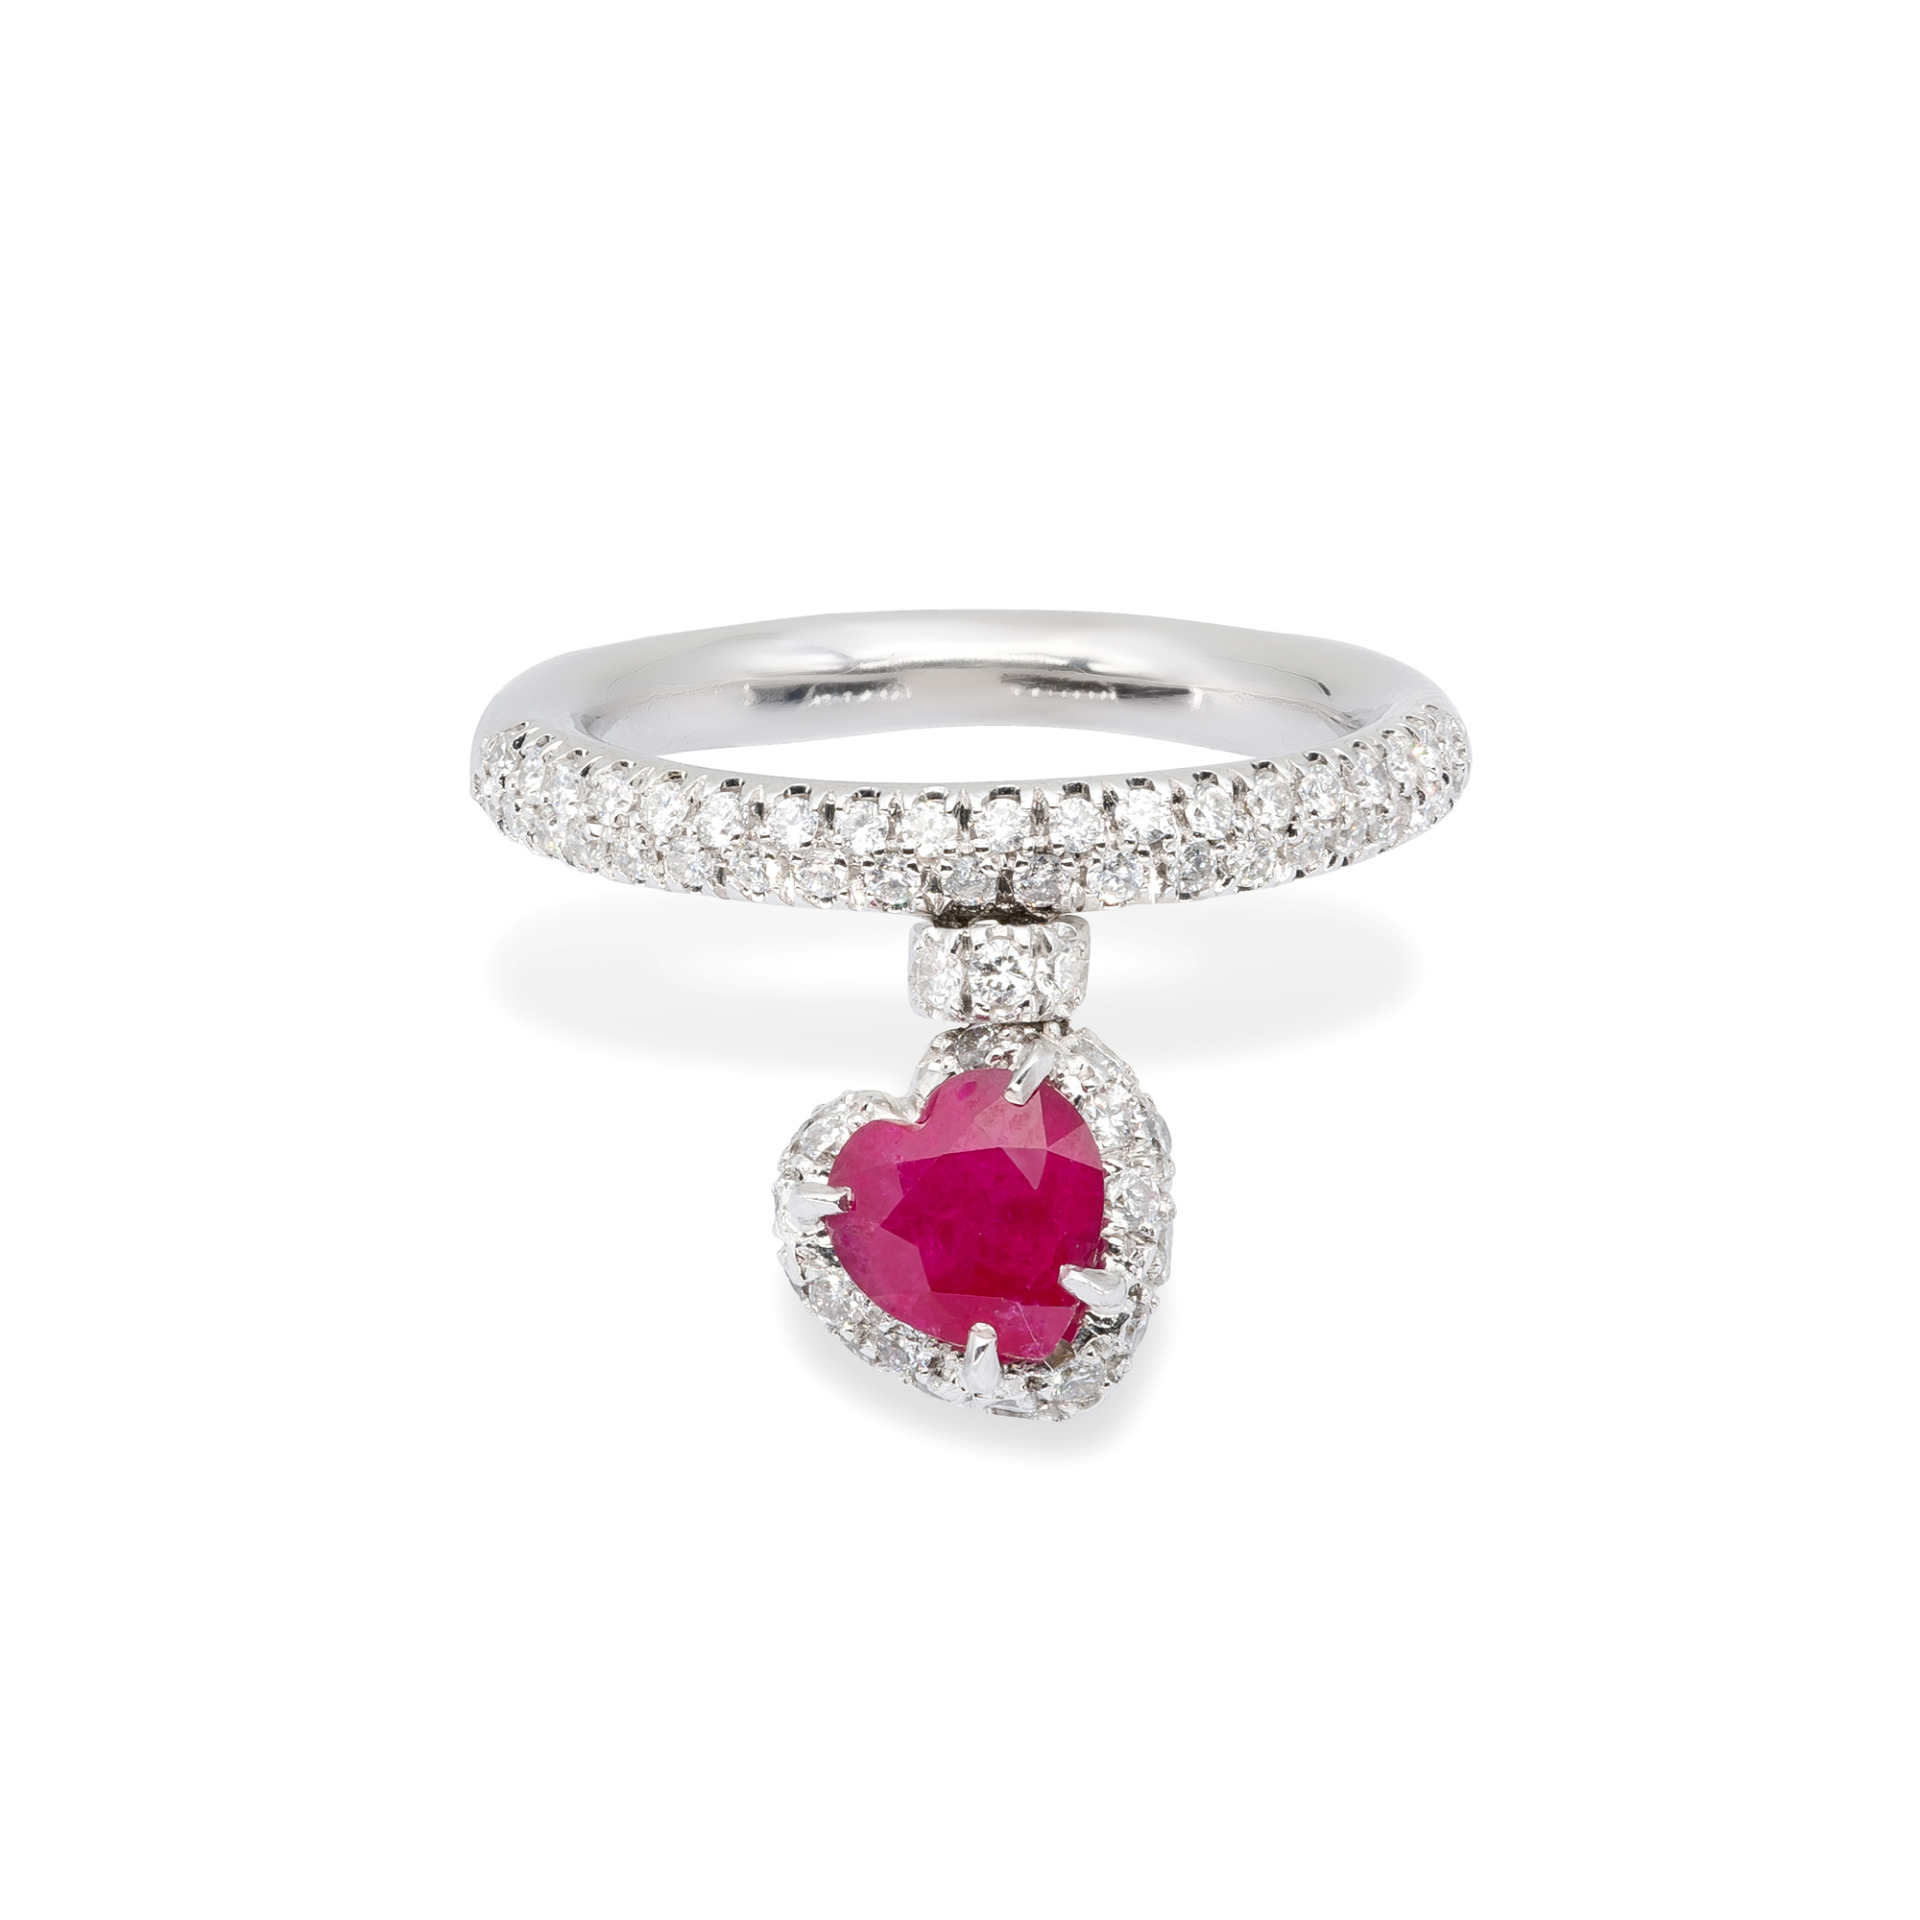 Ruby and white Diamonds d'Avossa Ring